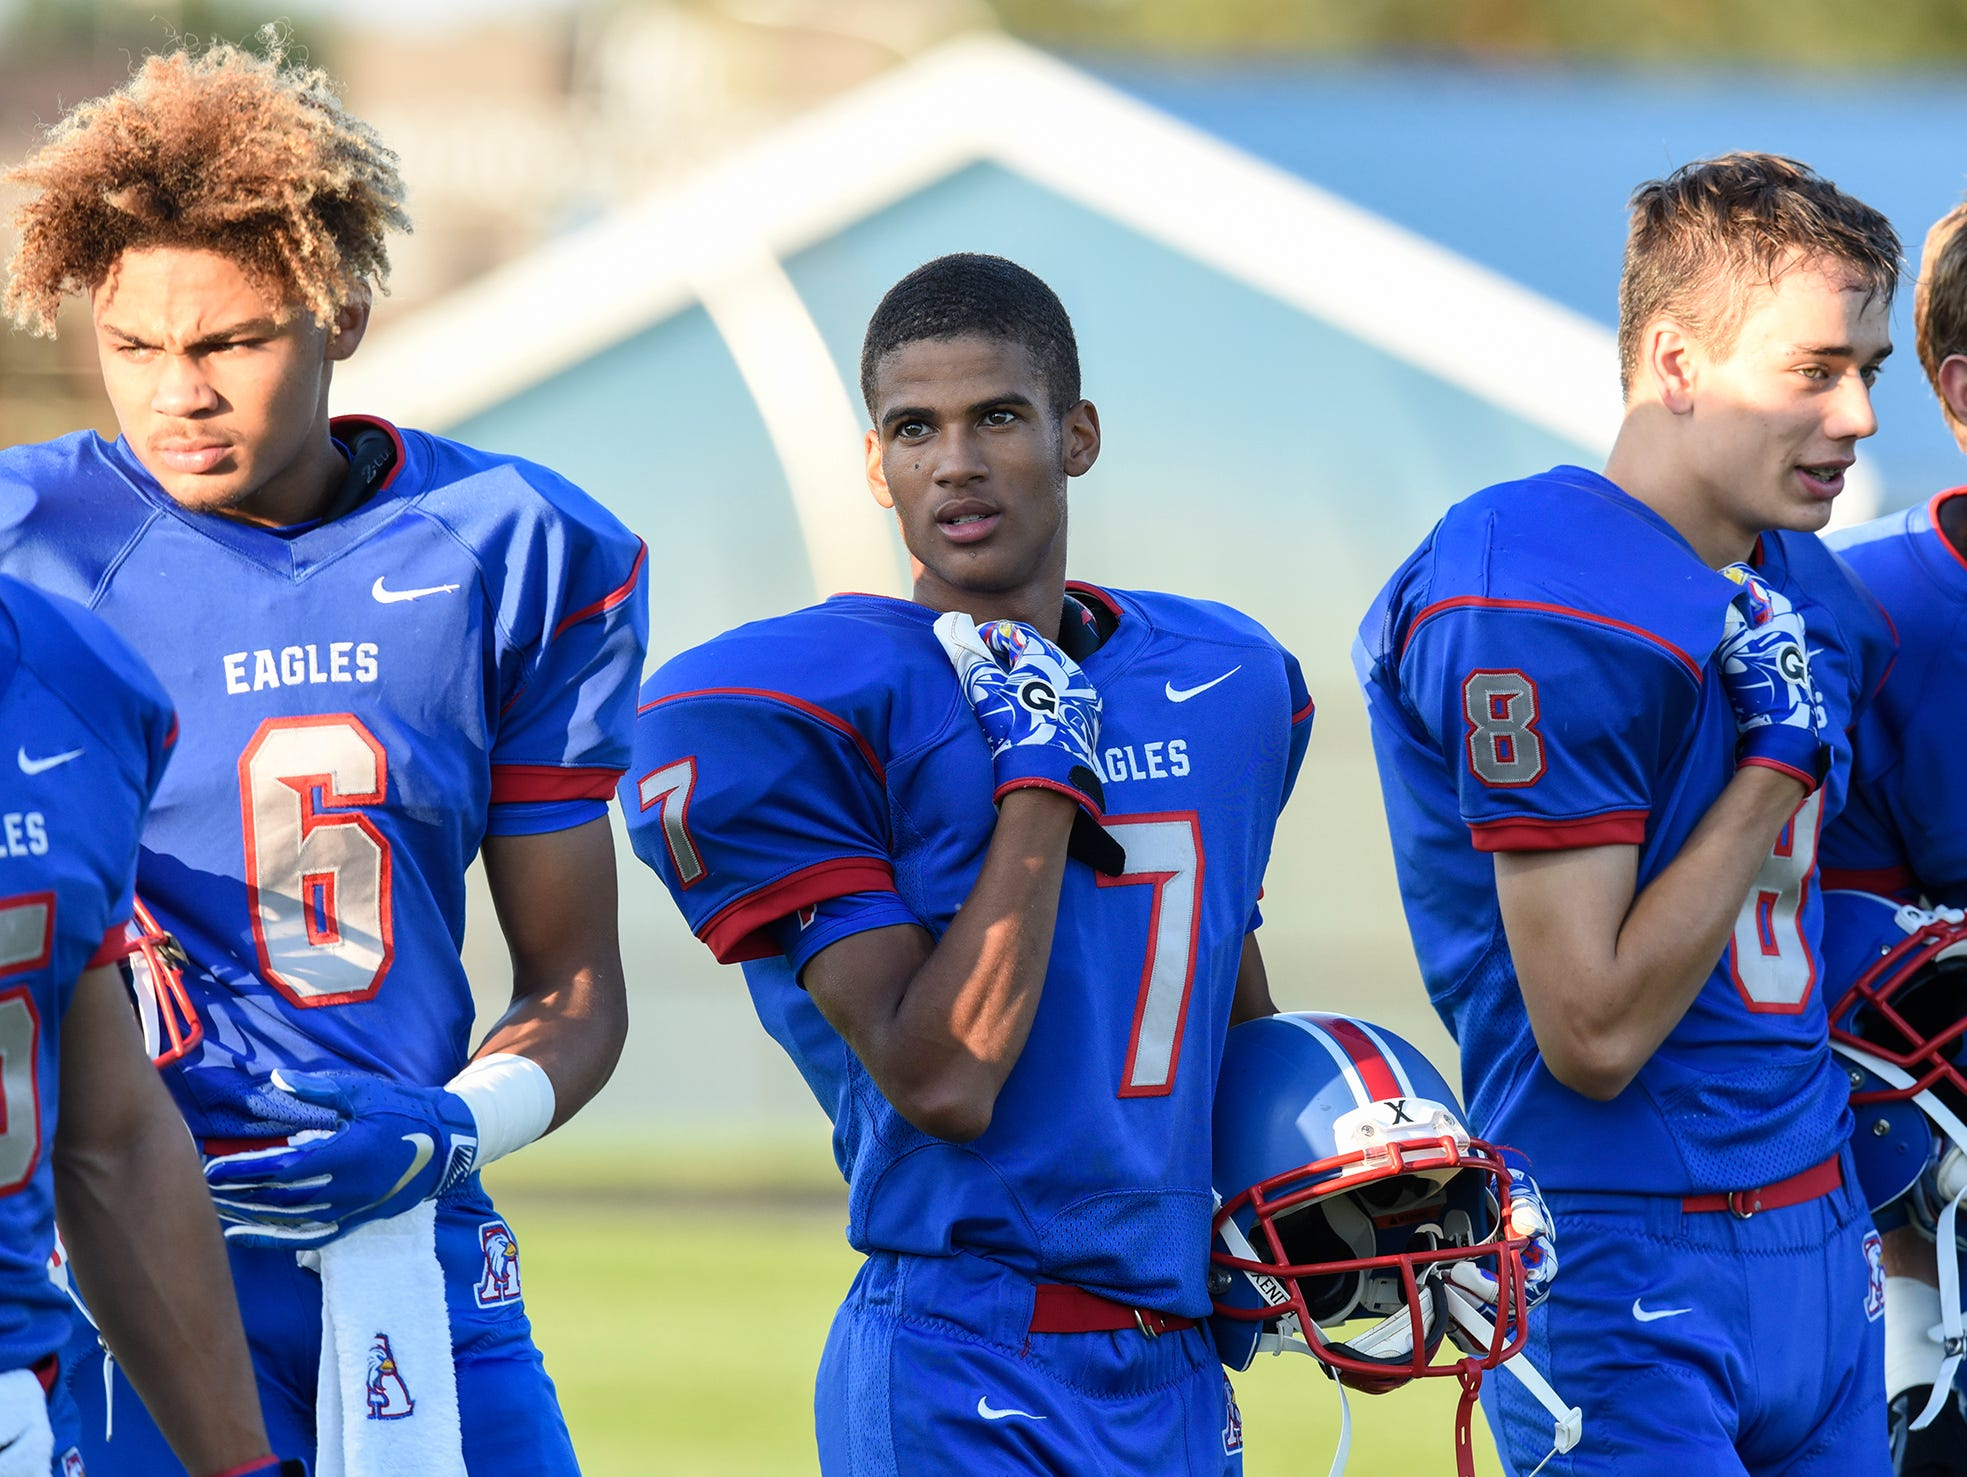 Apollo players line up before the start of the Friday, Sept. 7, game against Apollo at Apollo High School in St. Cloud.